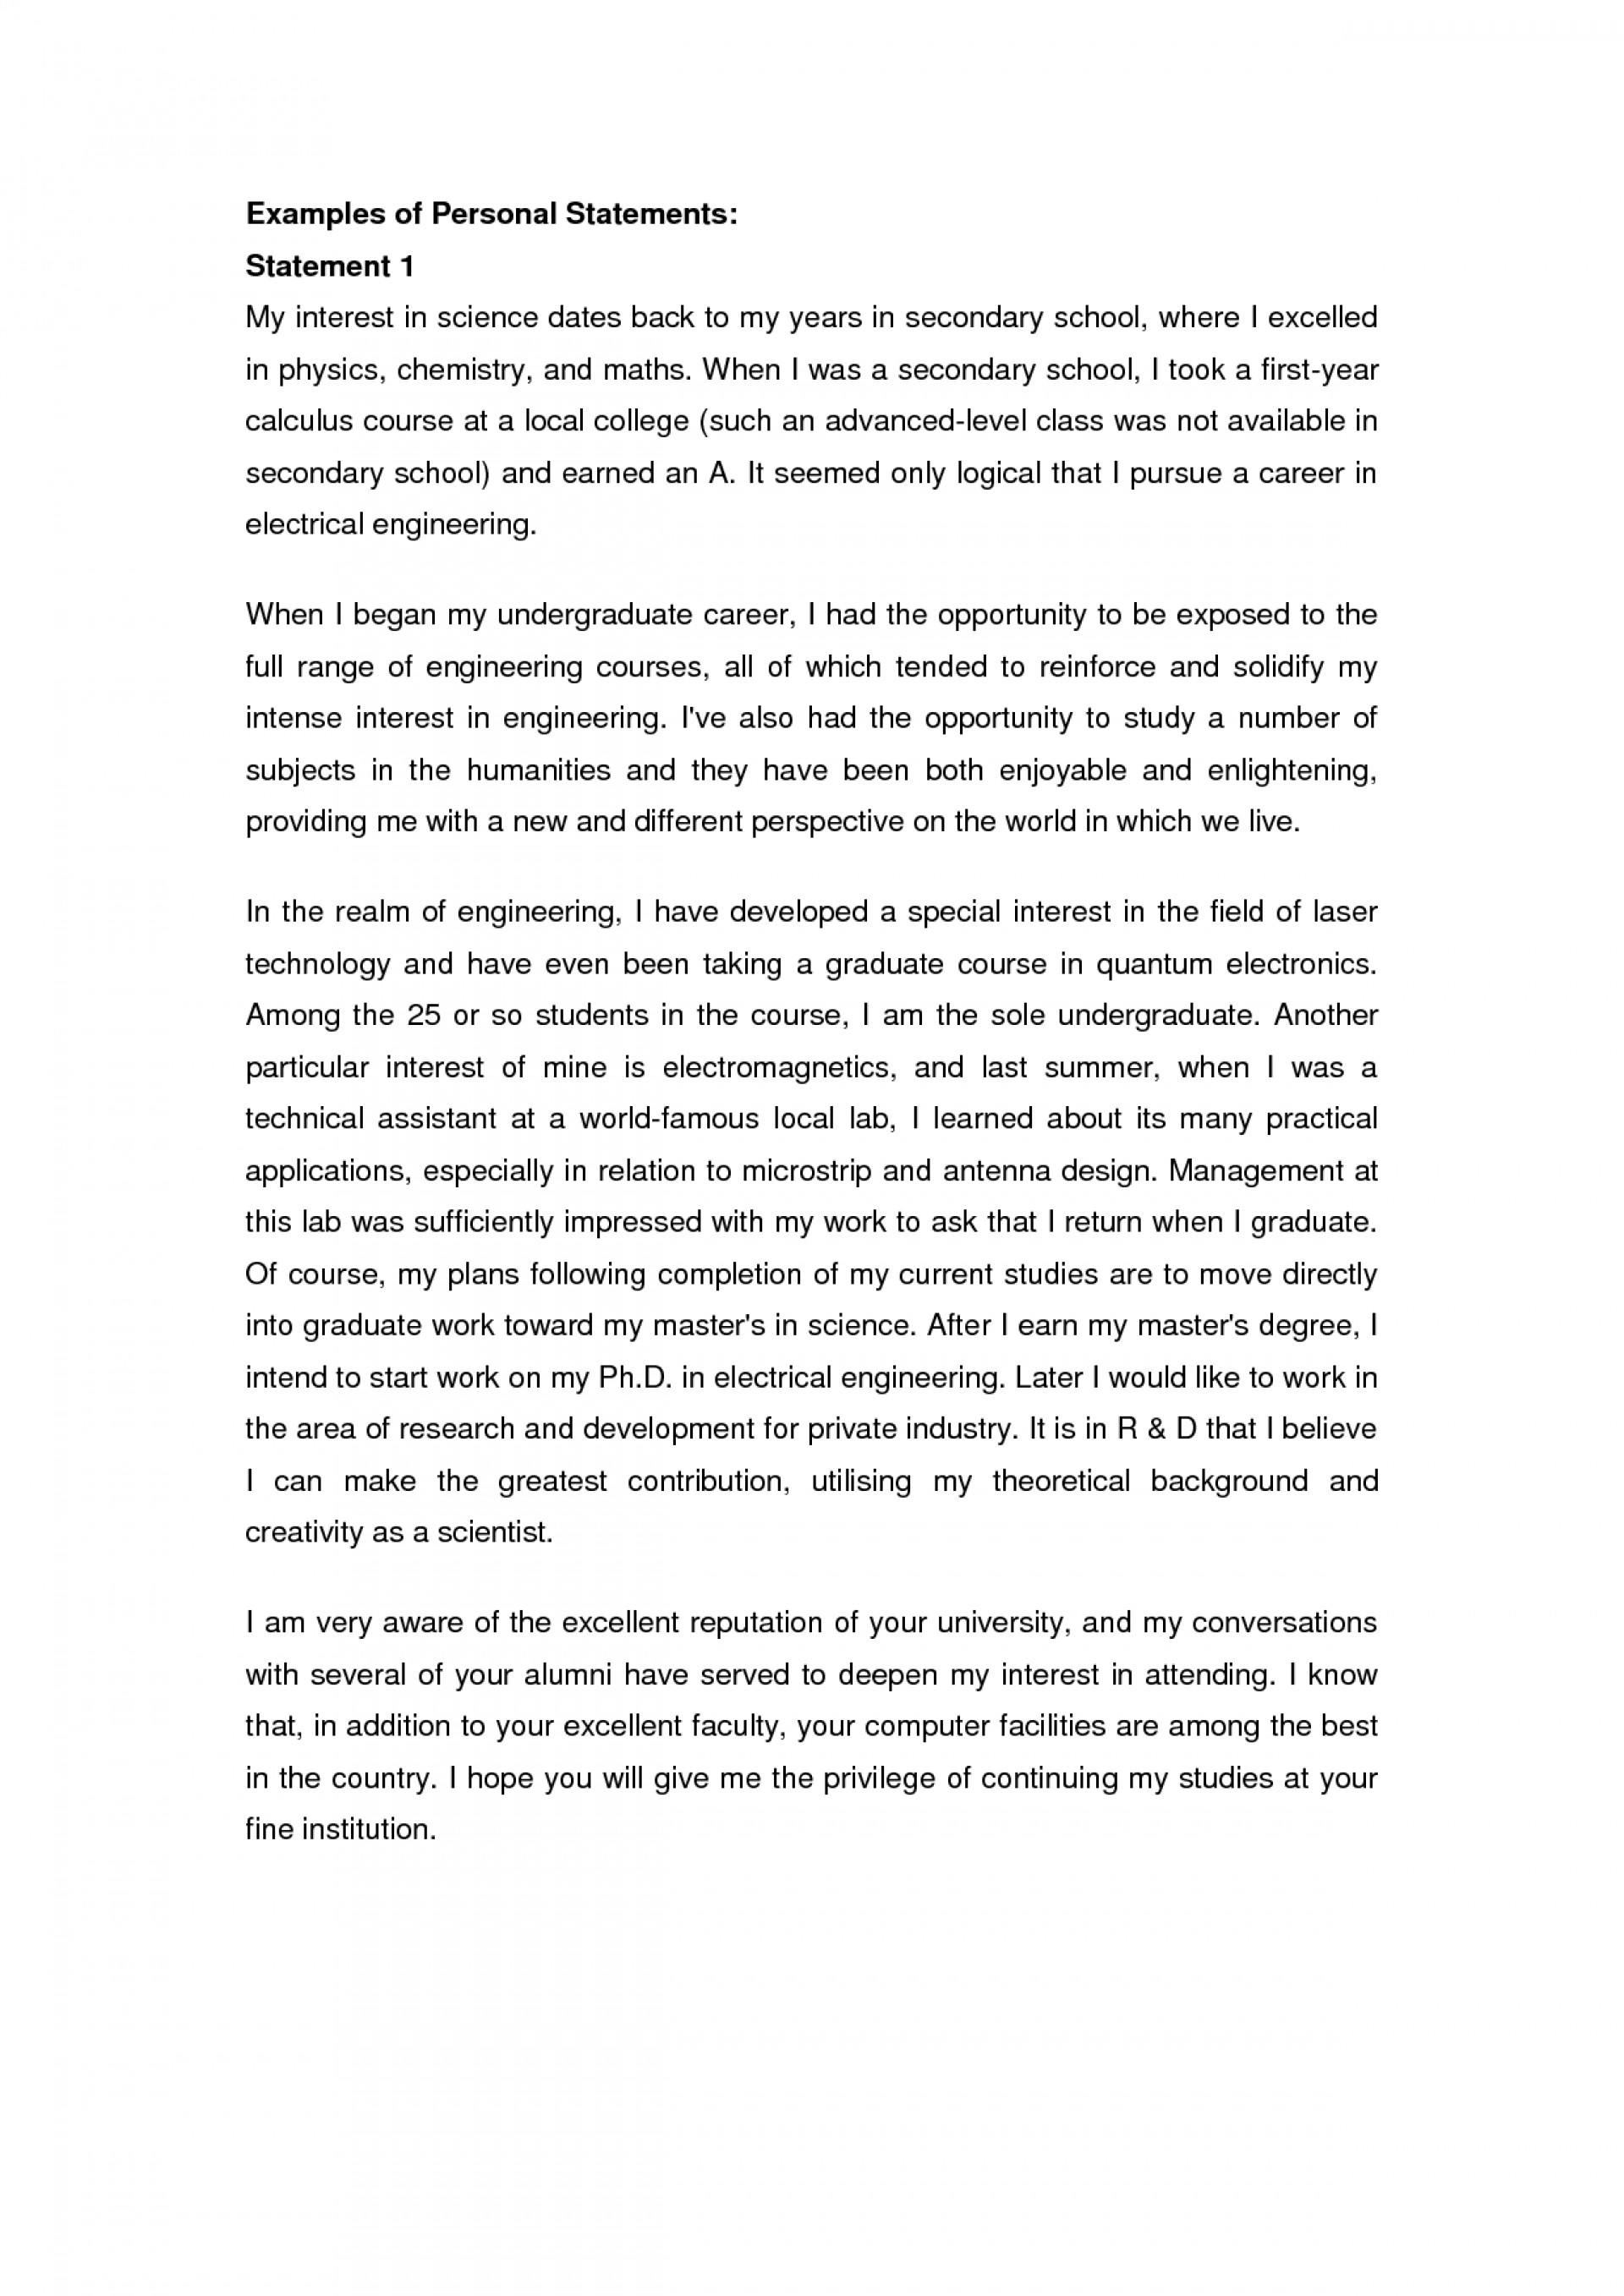 004 Examples Of Personal Essays Essay Stunning For Scholarships High School Pdf Example About Highschool Life 1920